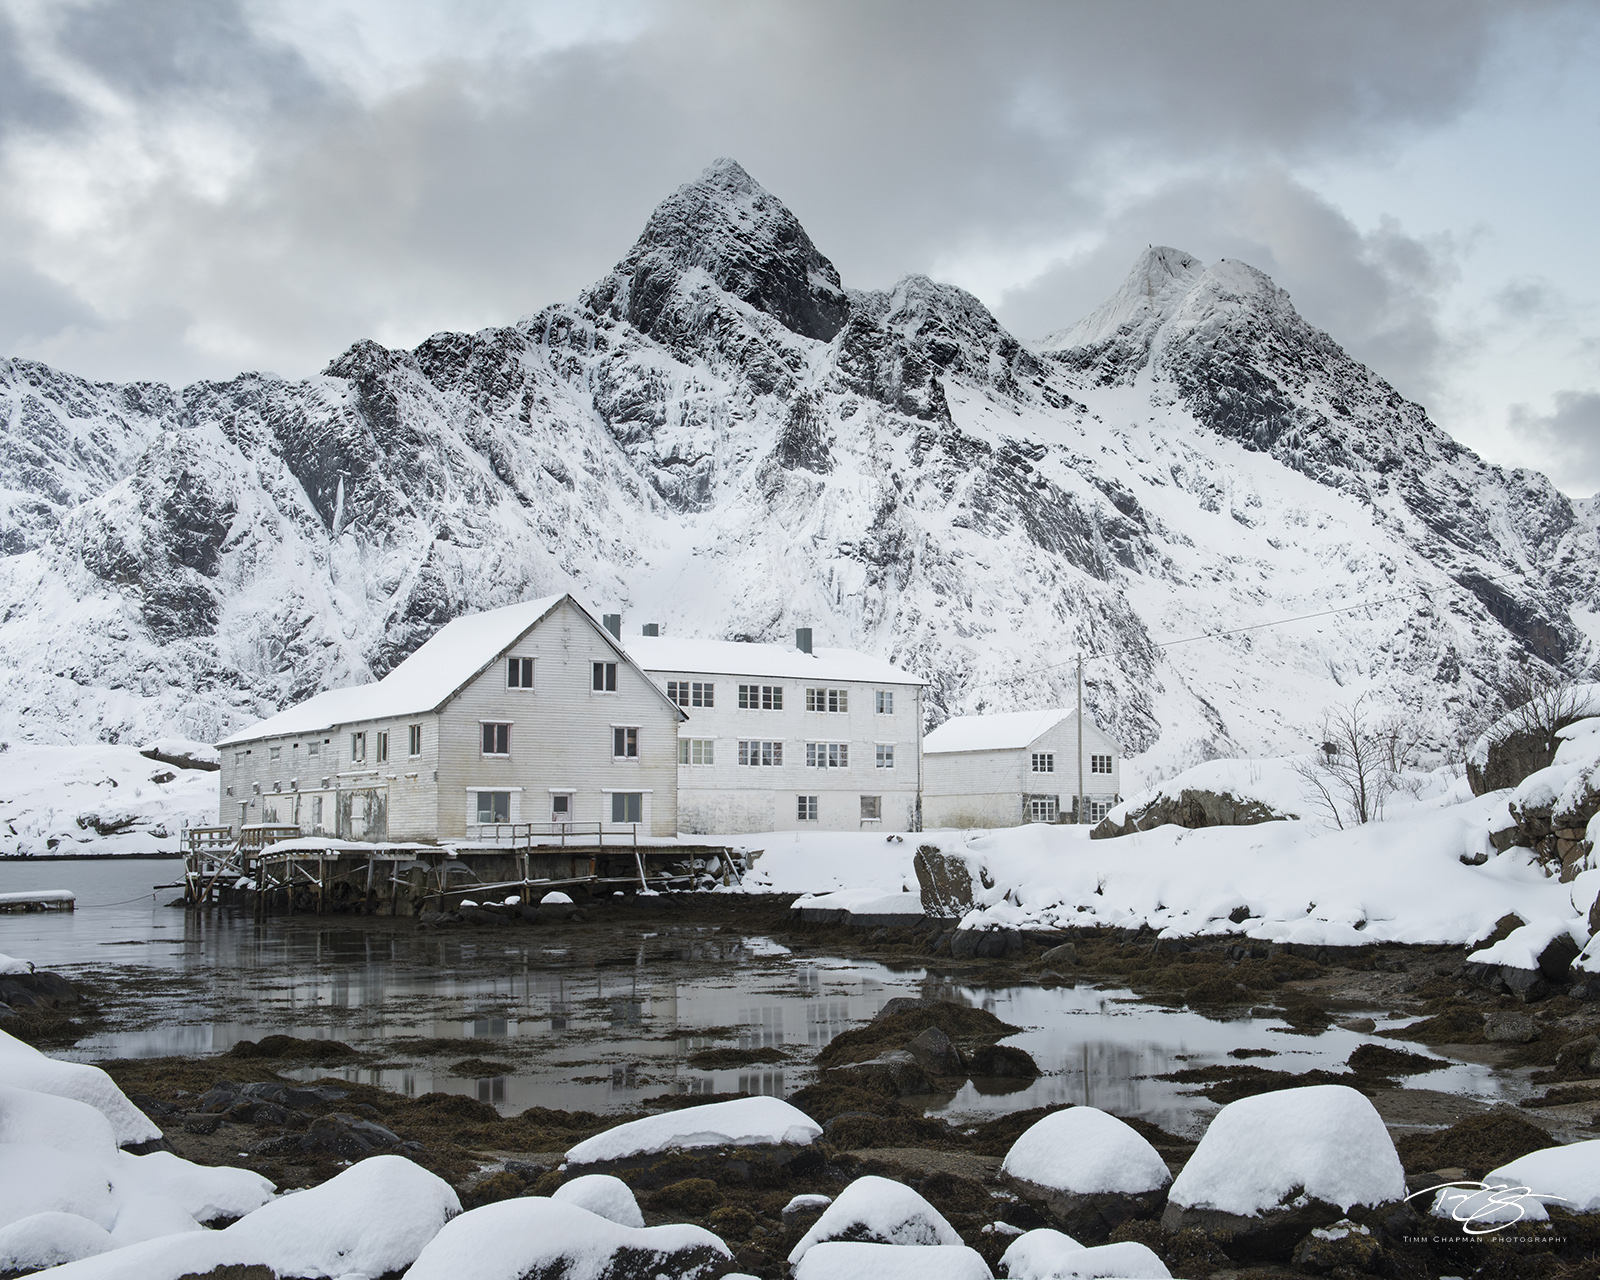 lofoten, Mærvoll, snowy, fresh snow, himmeltinden, winter, snow, snowing, snowfall, peaceful, quiet, serene, christmas, fishing village, Vestvagøy, Vestvagøya, factory, white, workshop, photo tour, photo